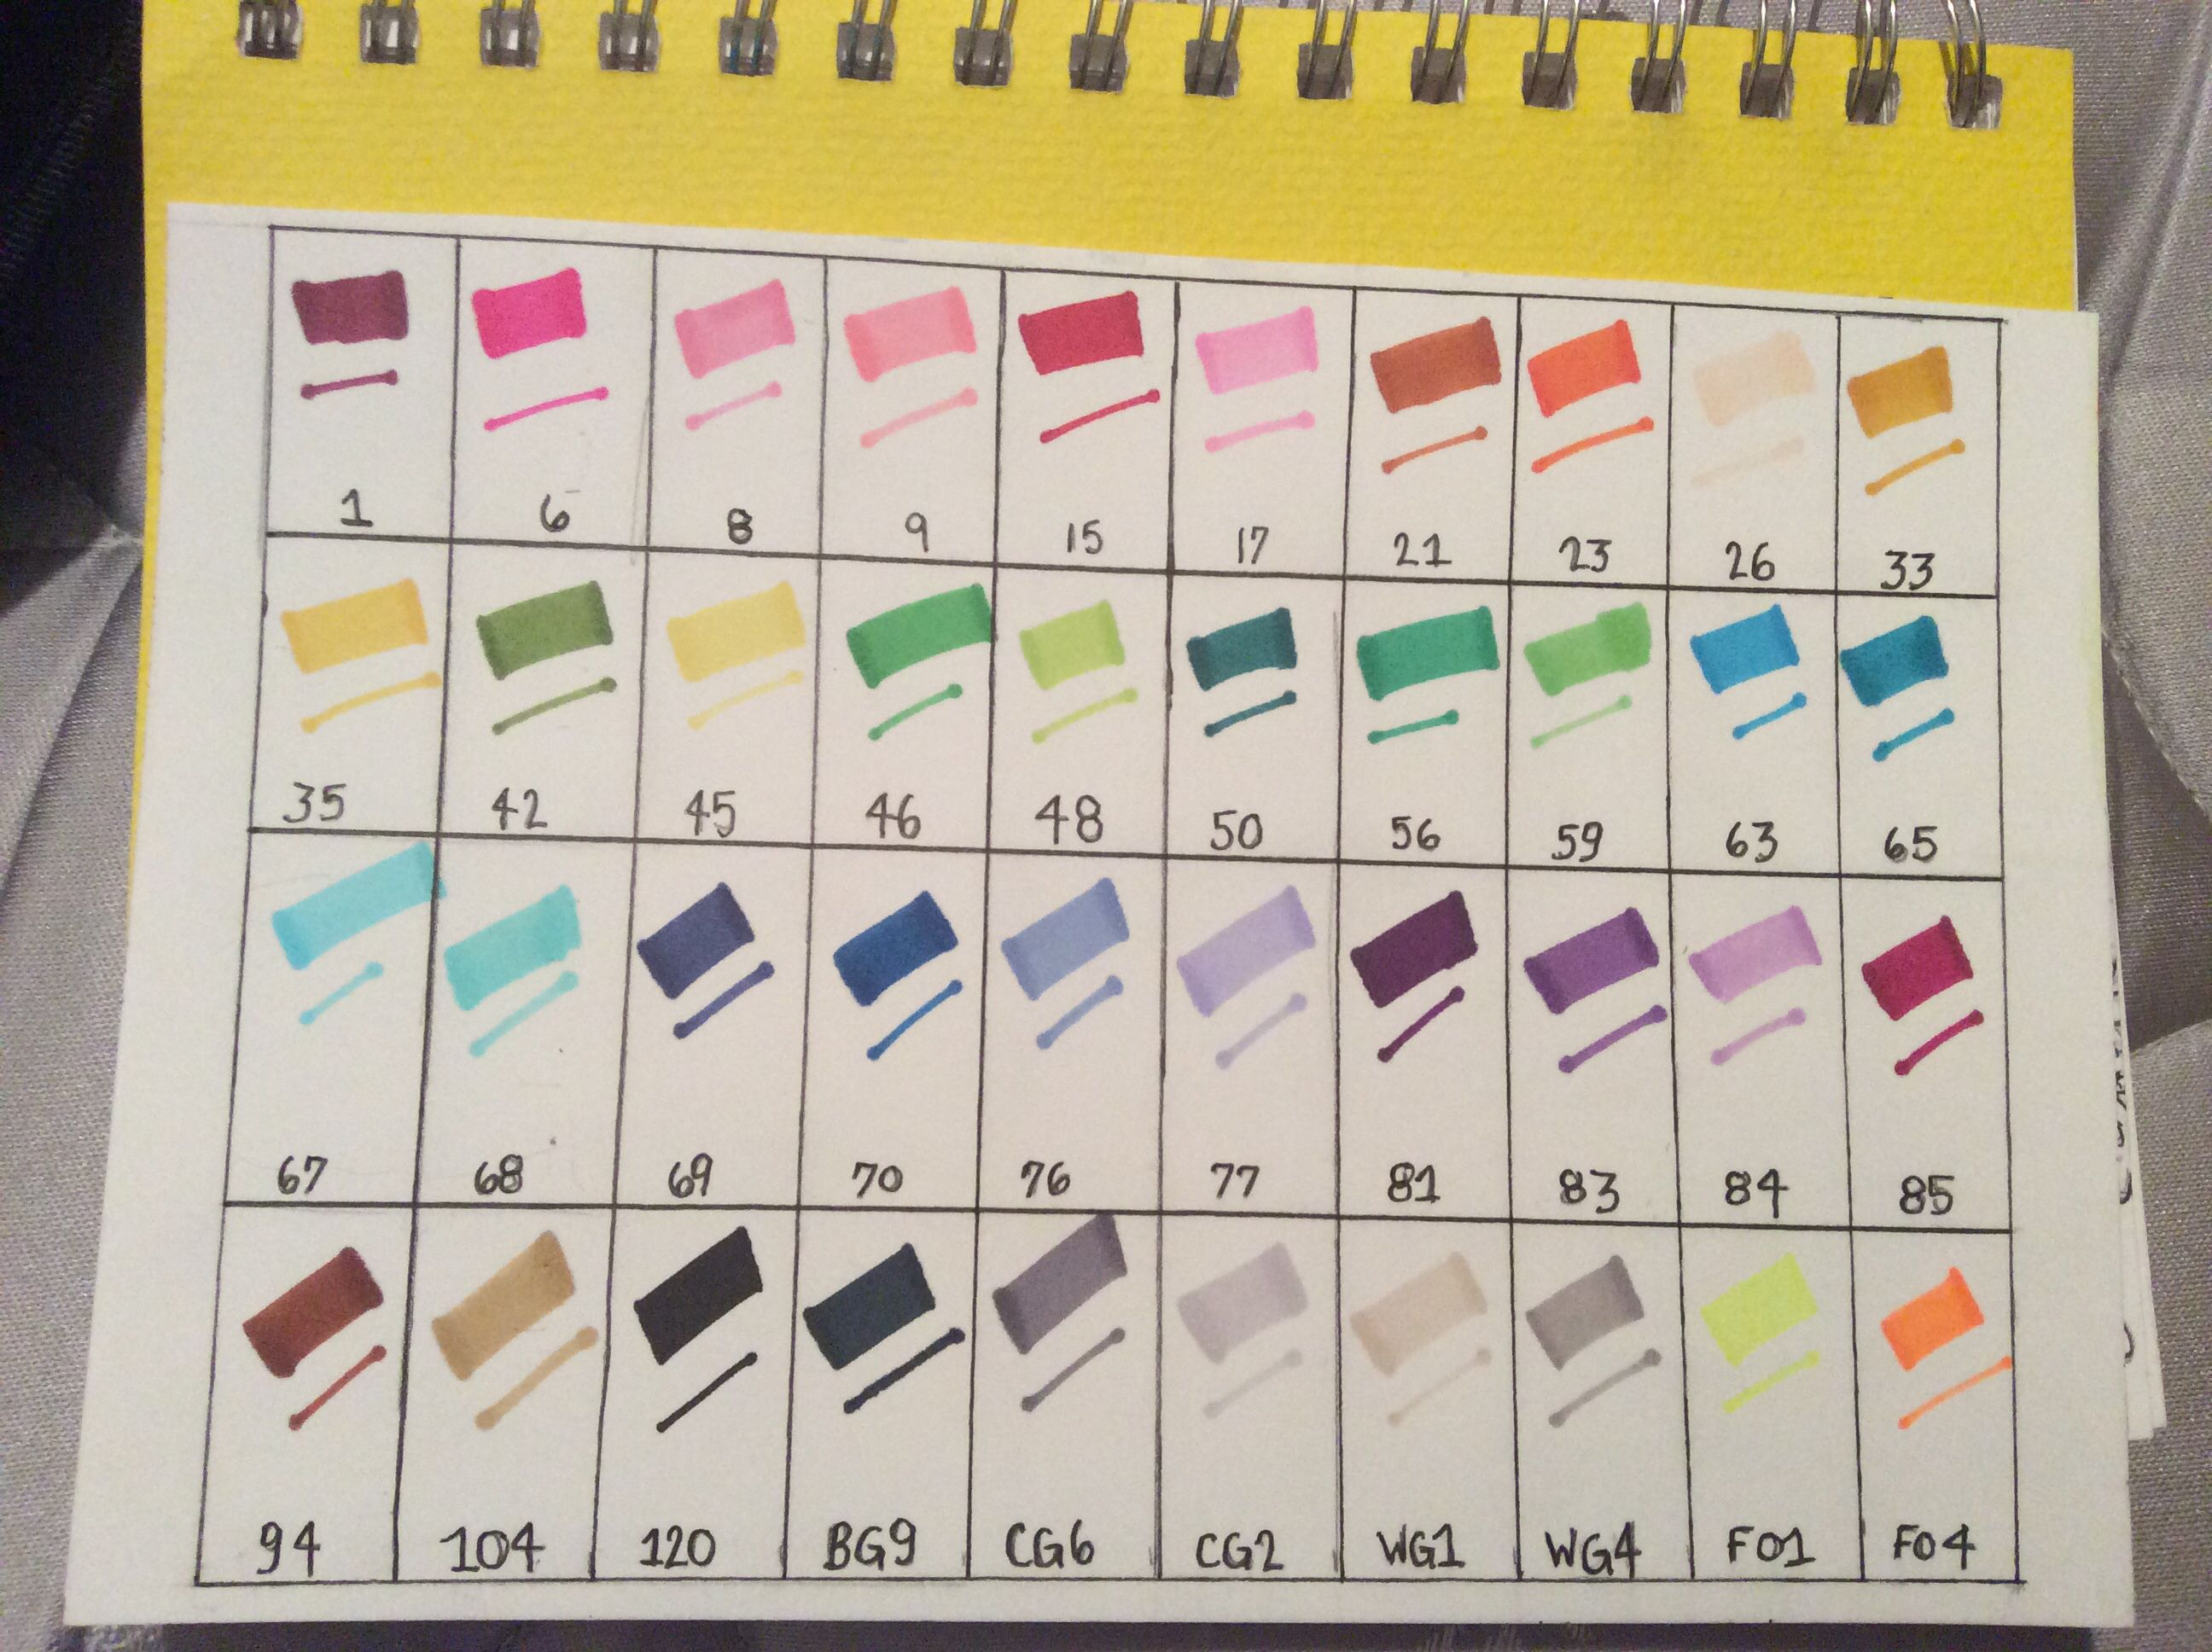 Ohuhu 40 Marker Color Chart Homemade Ohuhu Markers Markers